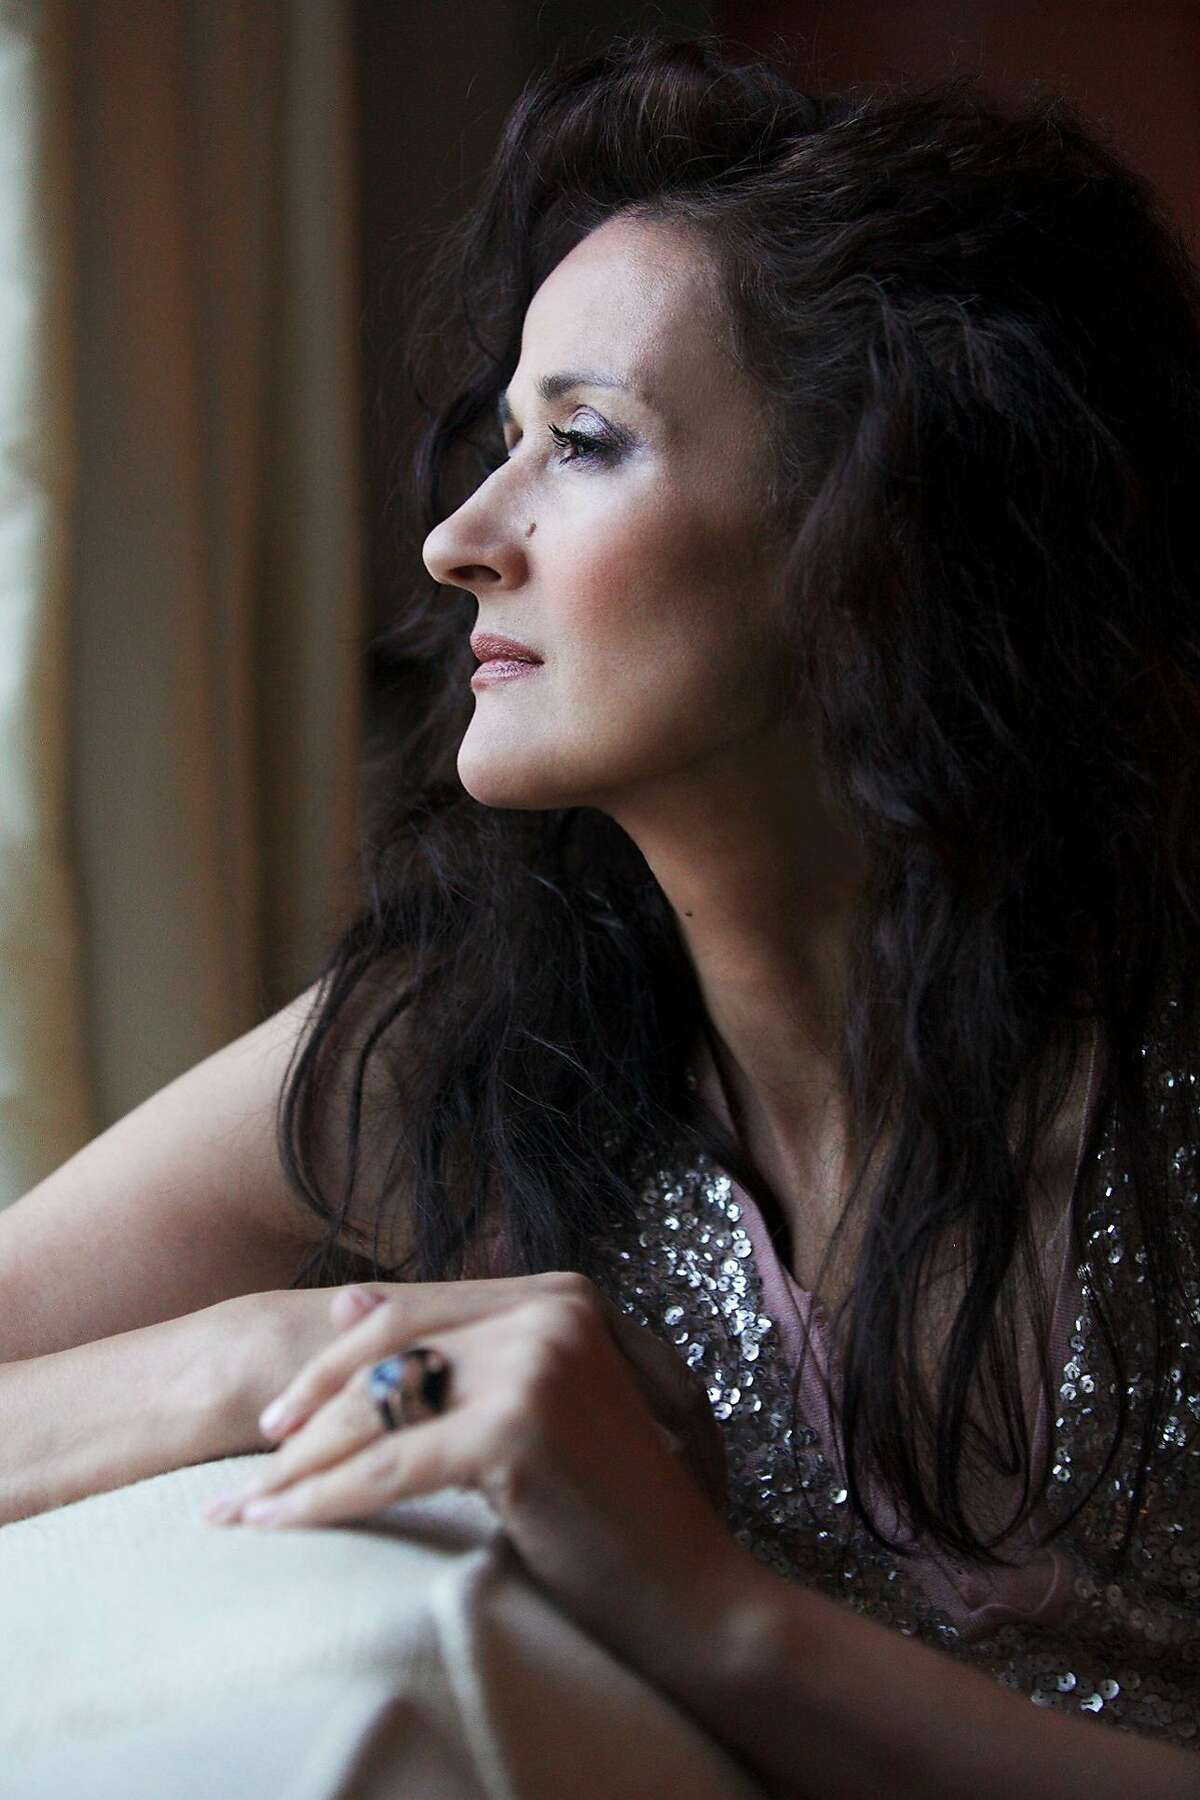 Jazz vocalist Teresa Souter will be performing in San Francisco and Santa Cruz.